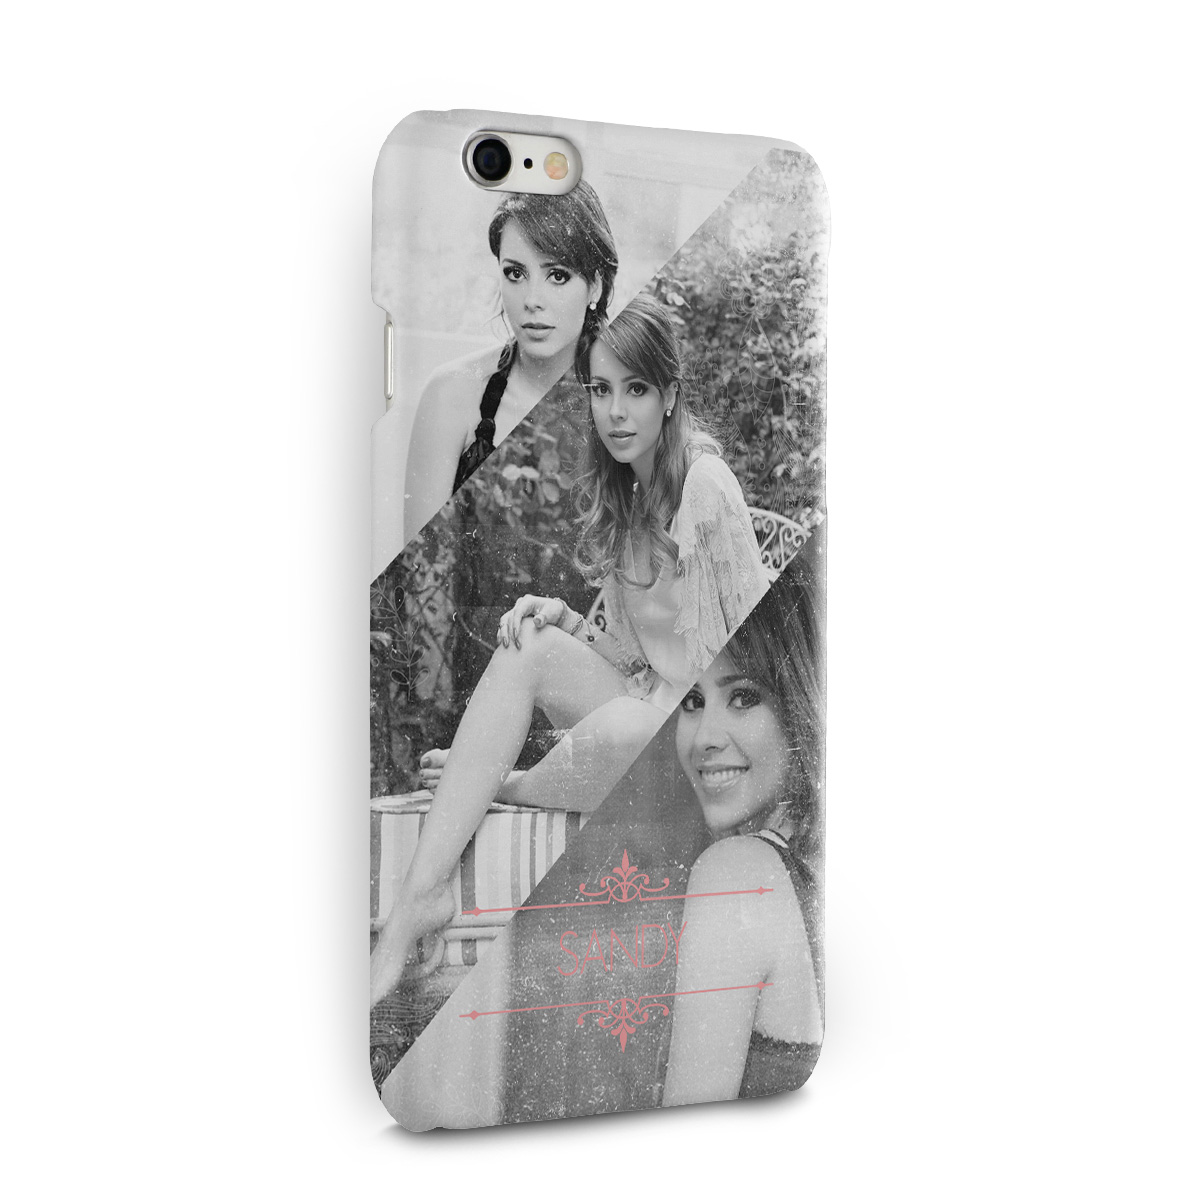 Capa para iPhone 6/6S Sandy Pictures